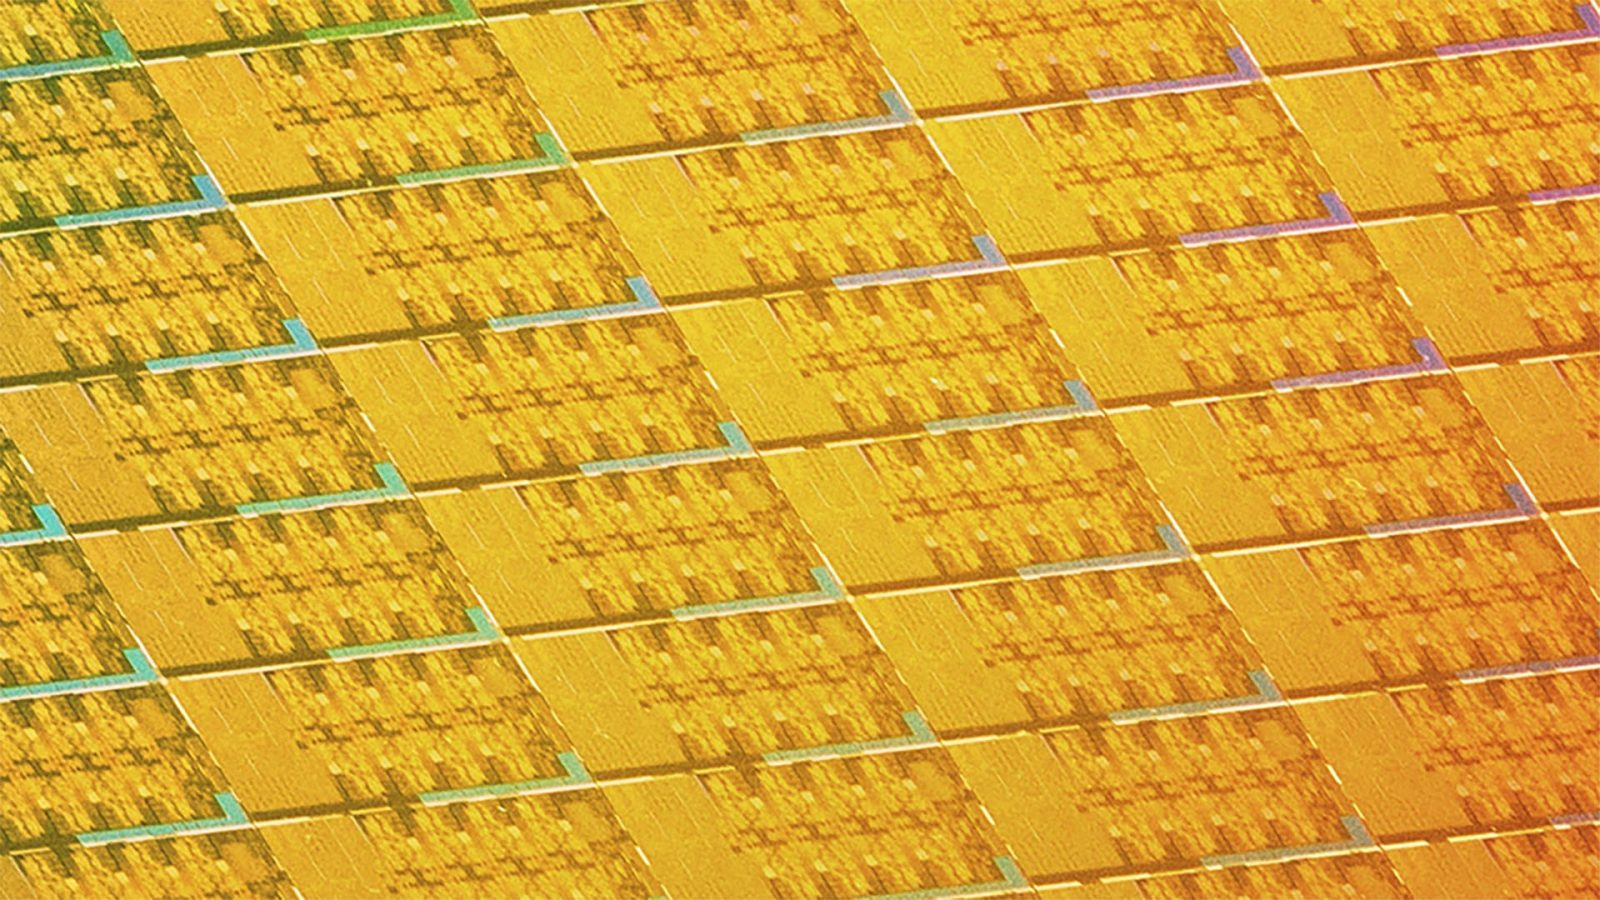 Intel's 10-core Comet Lake CPU's ahead of schedule and set for a CES preview